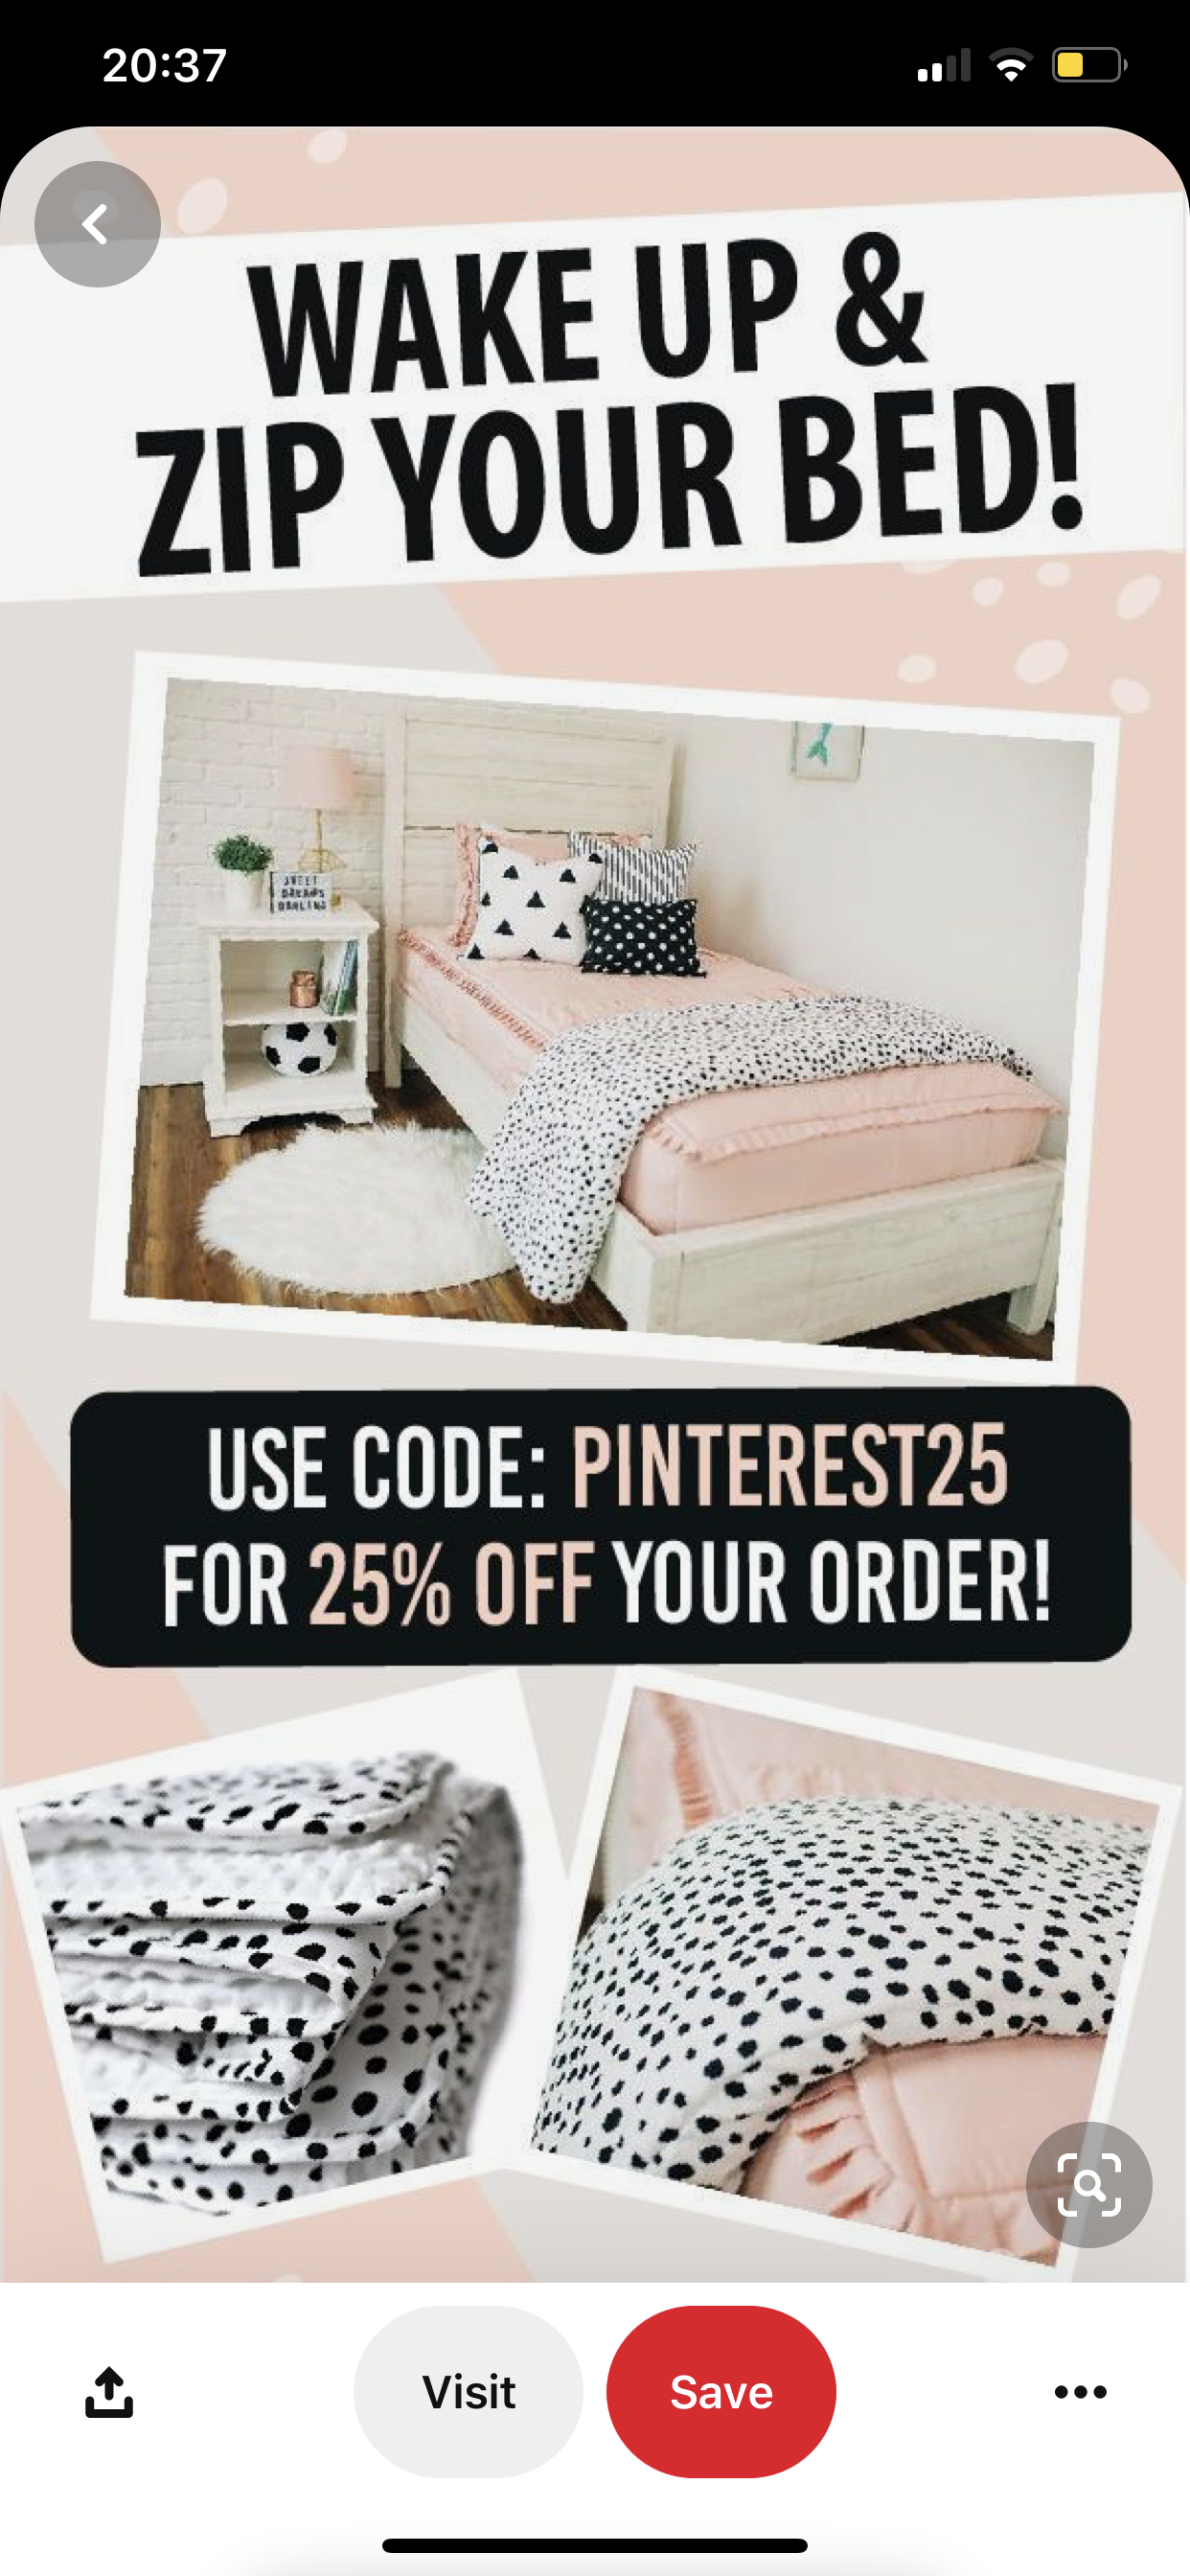 Beddys beds/Pinterest huge give away !!